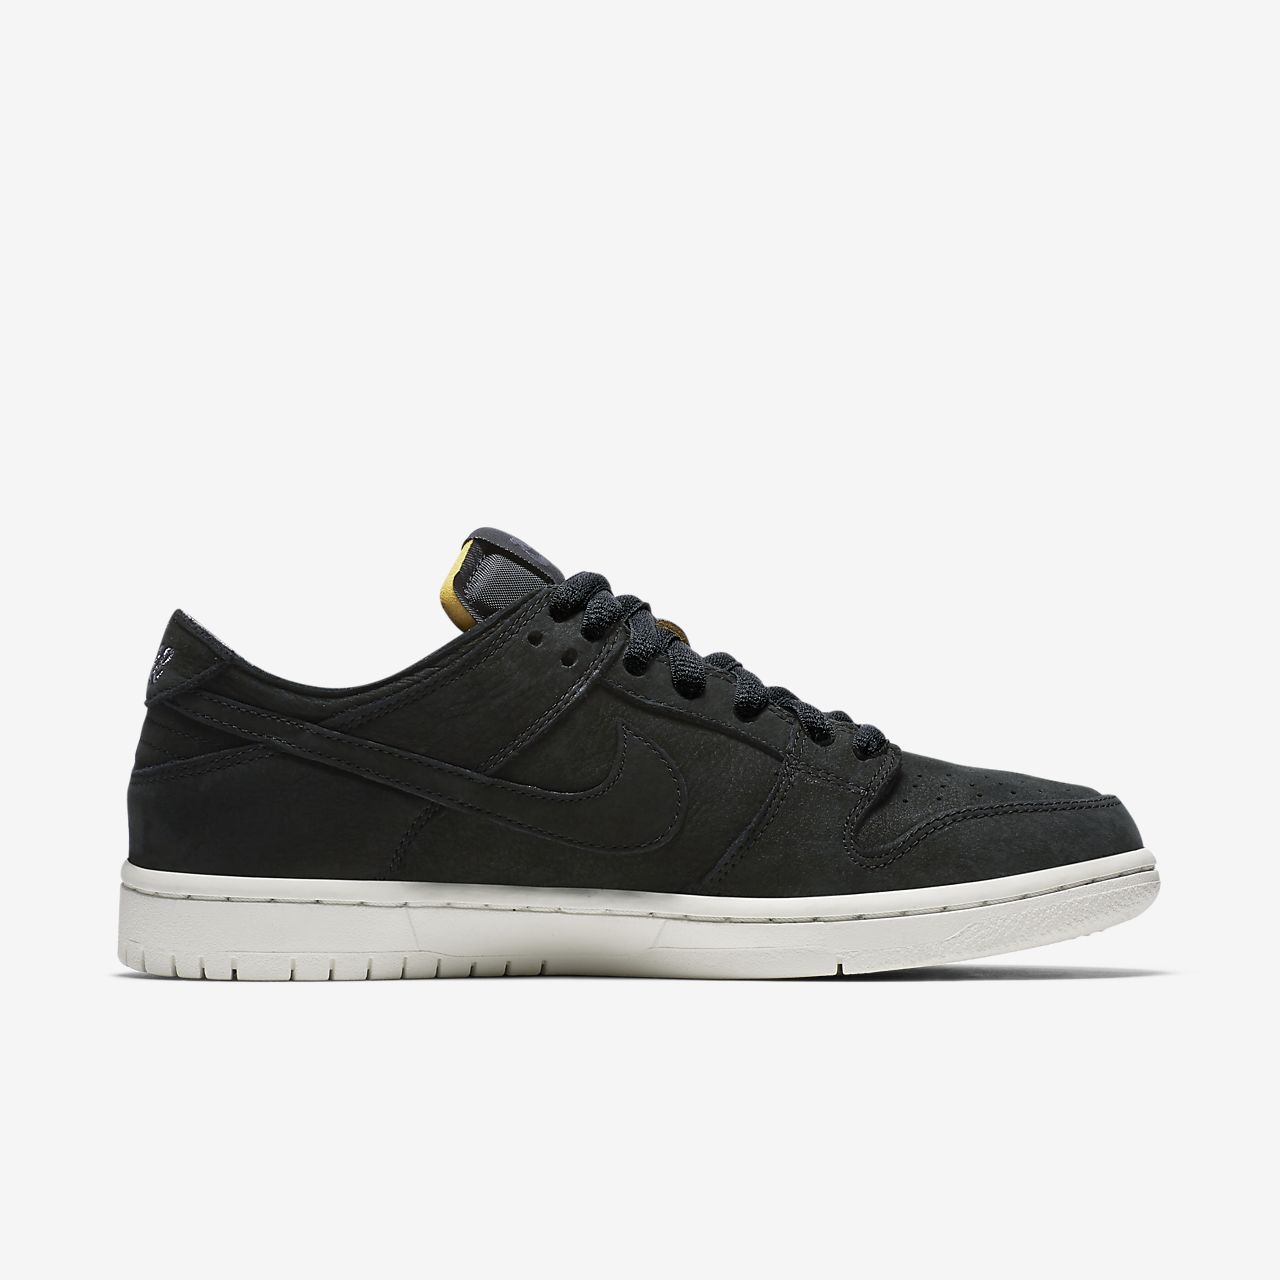 nike sb zoom dunk low pro deconstructed mens skateboarding shoe